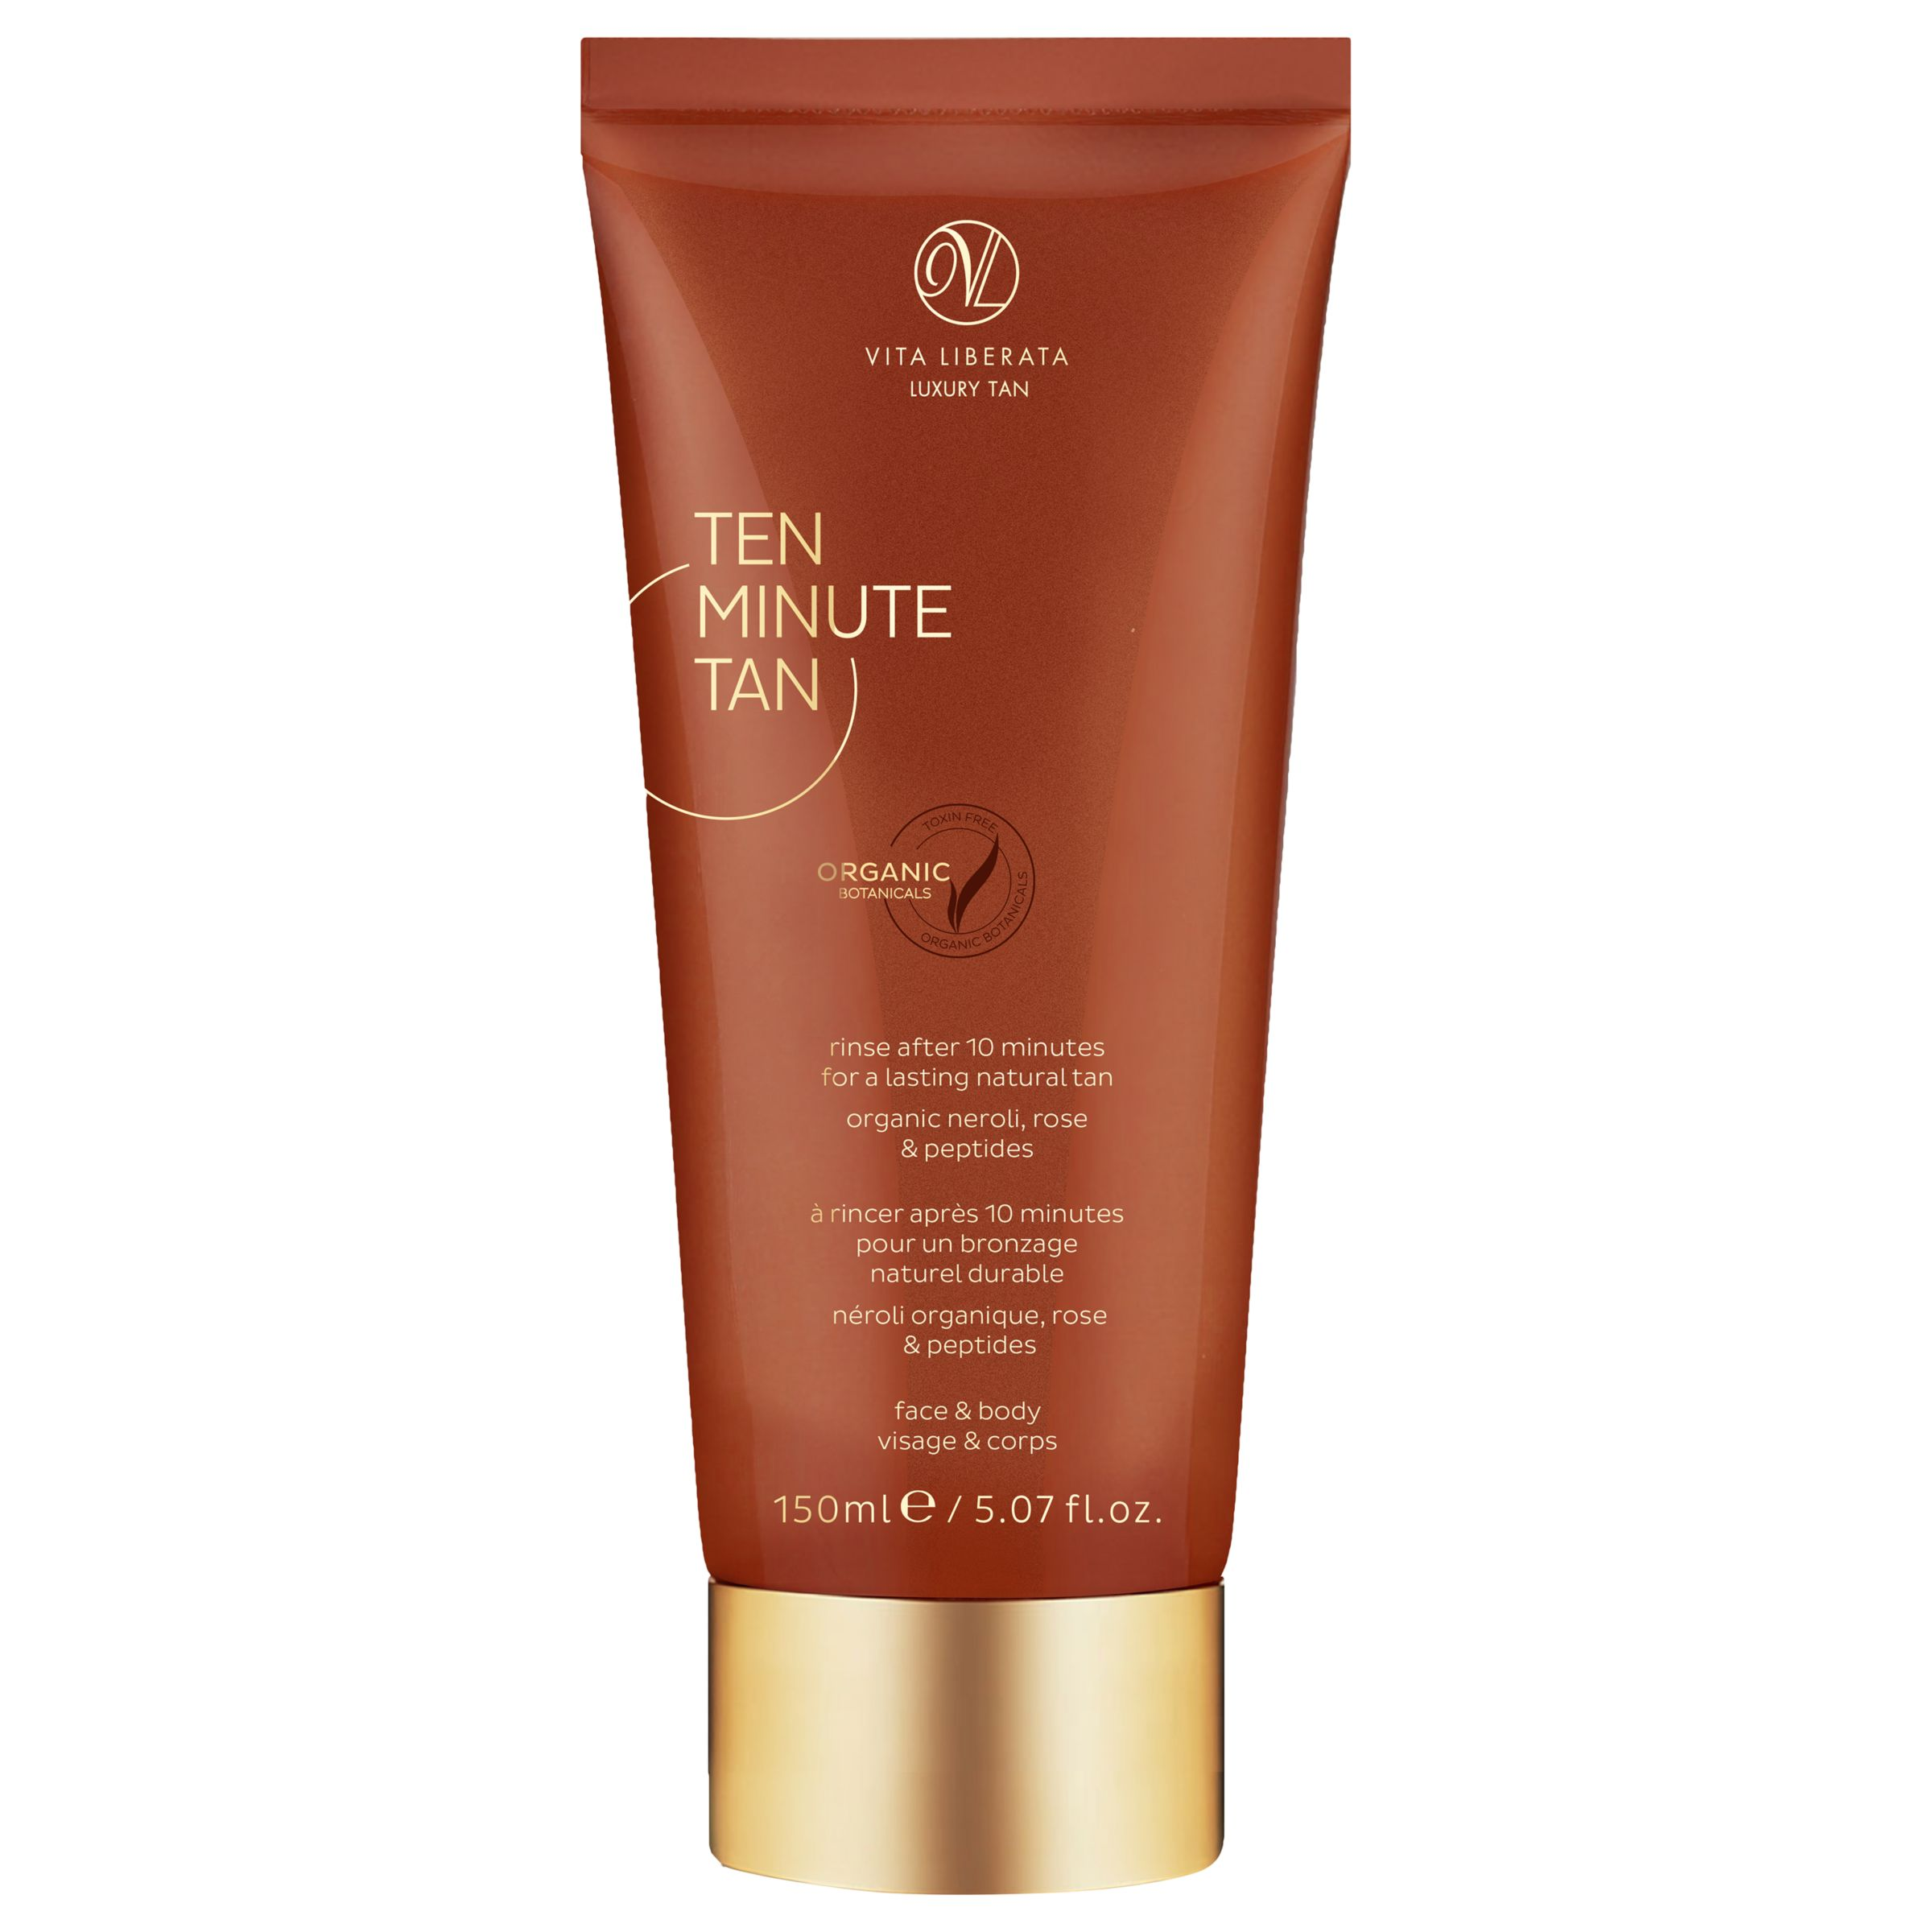 Vita Liberata Vita Liberata Ten Minute Tan, 150ml